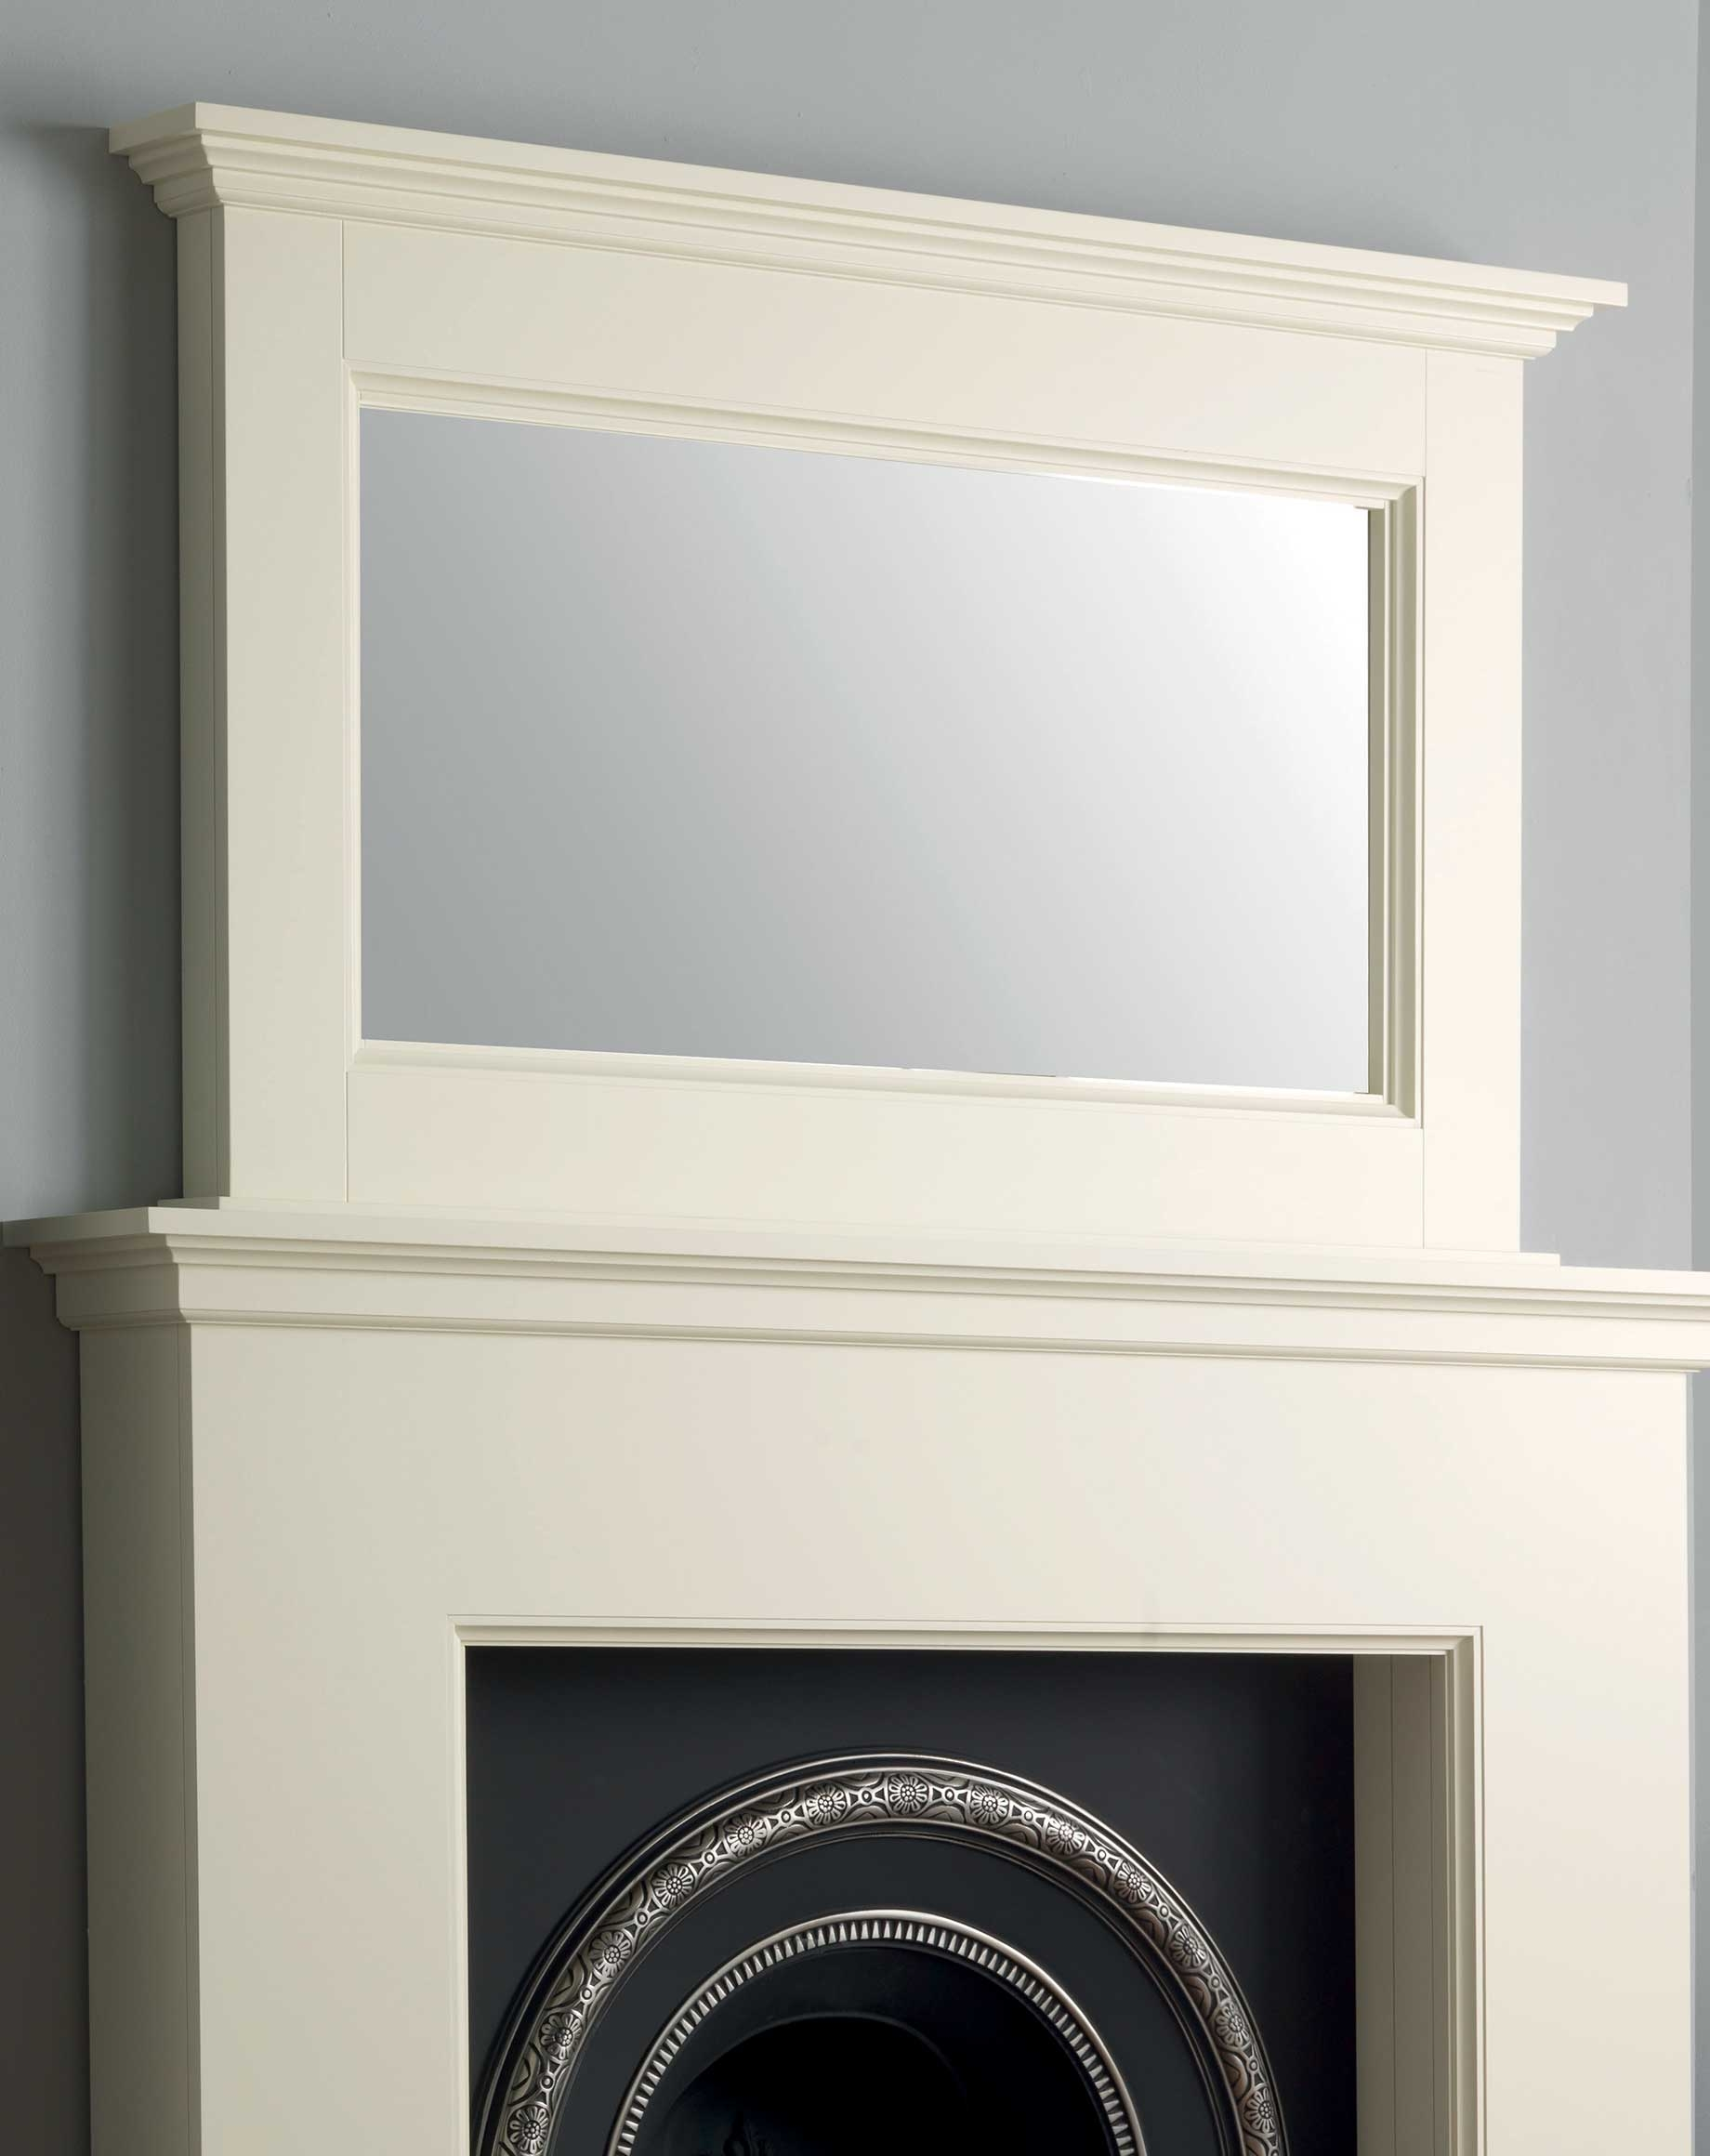 Shaftesbury Mirror Solid Wood Emberz Mantels Within Mantelpiece Mirror (Image 11 of 15)